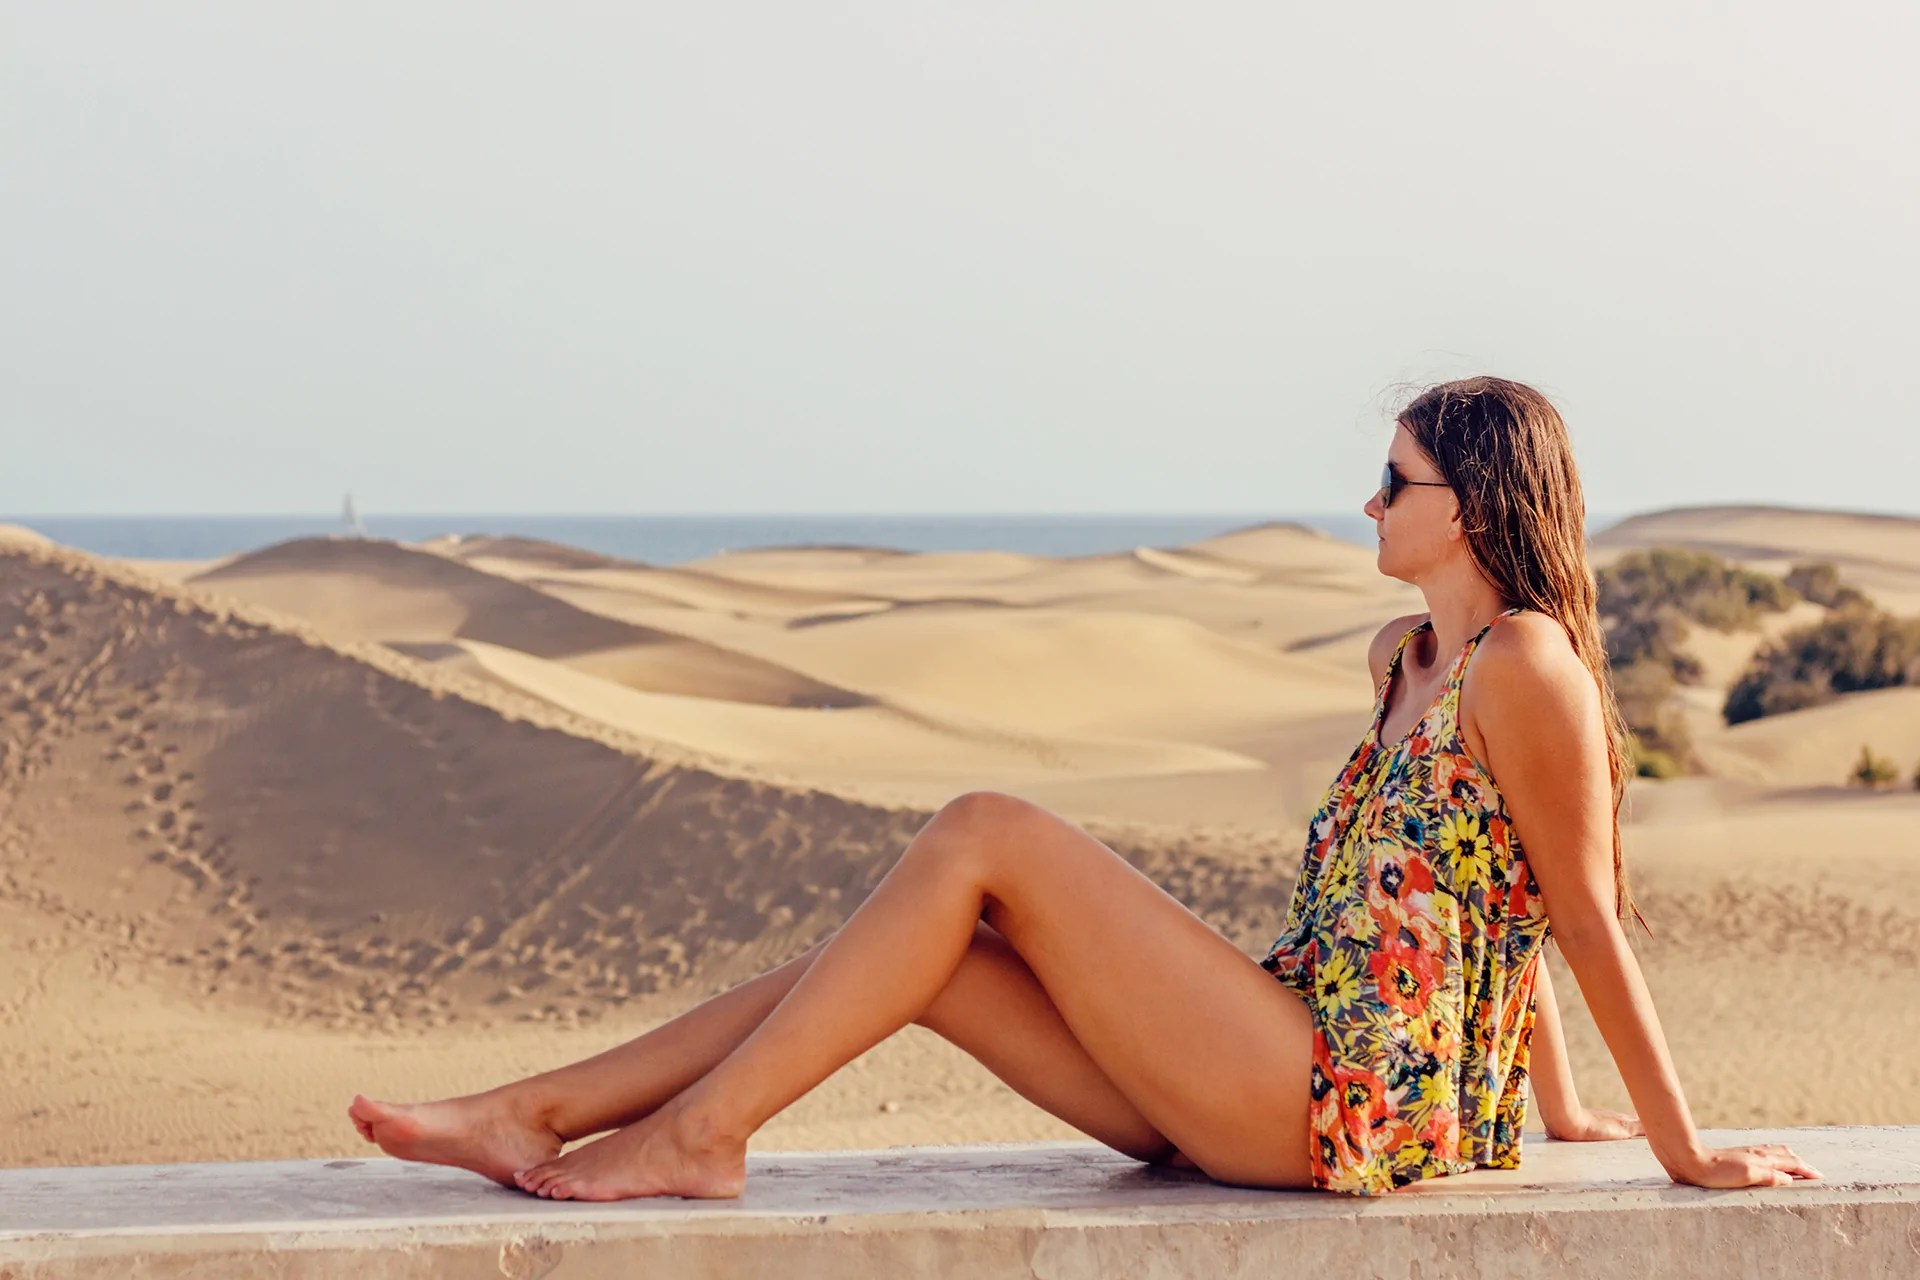 Canva_-_Woman_Sitting_on_Sand_at_Beach_Against_Sky